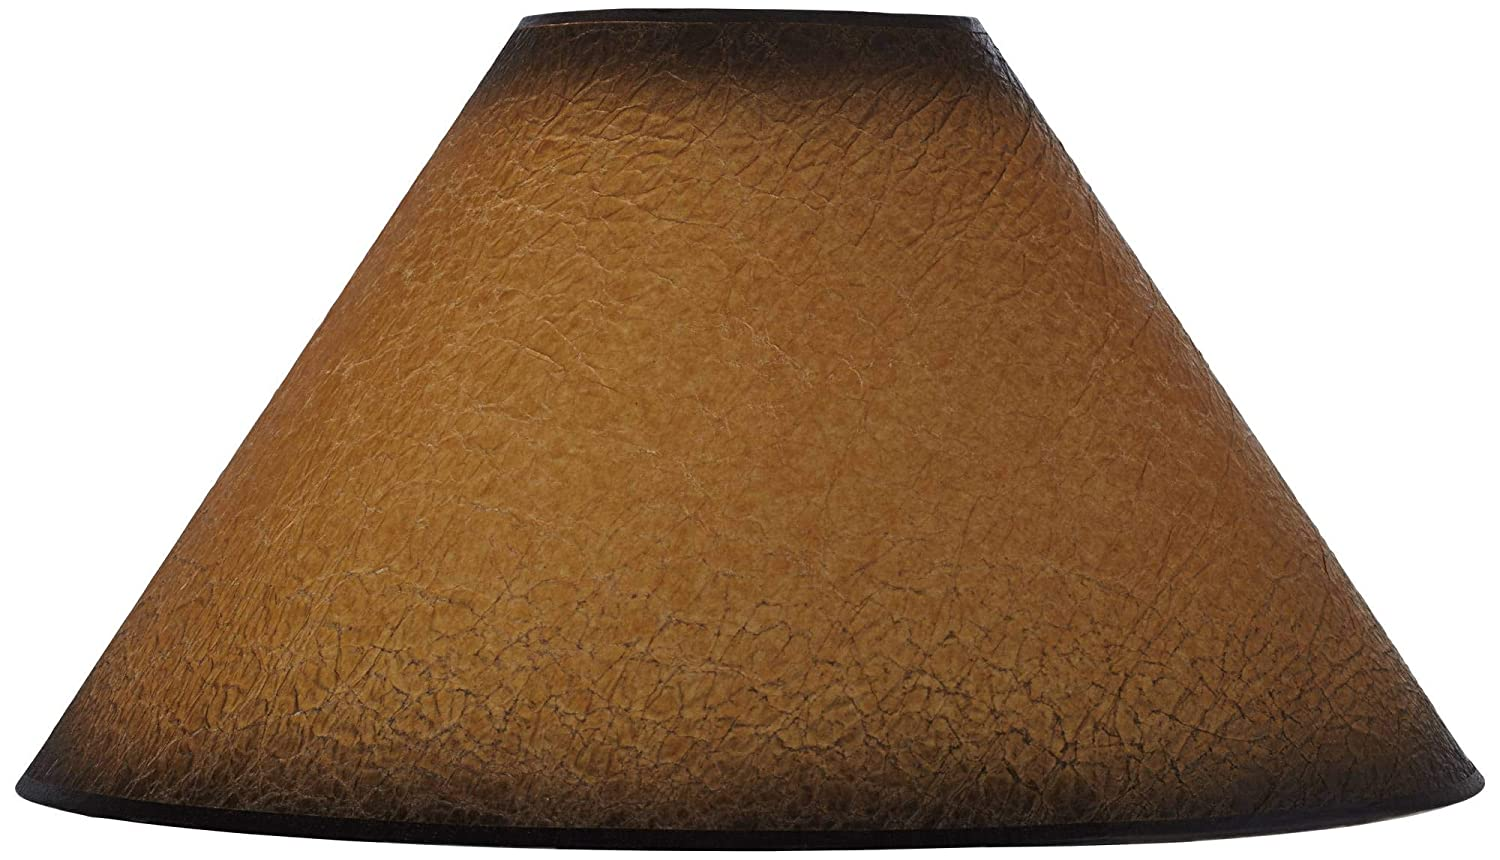 Distressed Faux Paper Lamp Shade 6x19x12 (Spider) - Brentwood